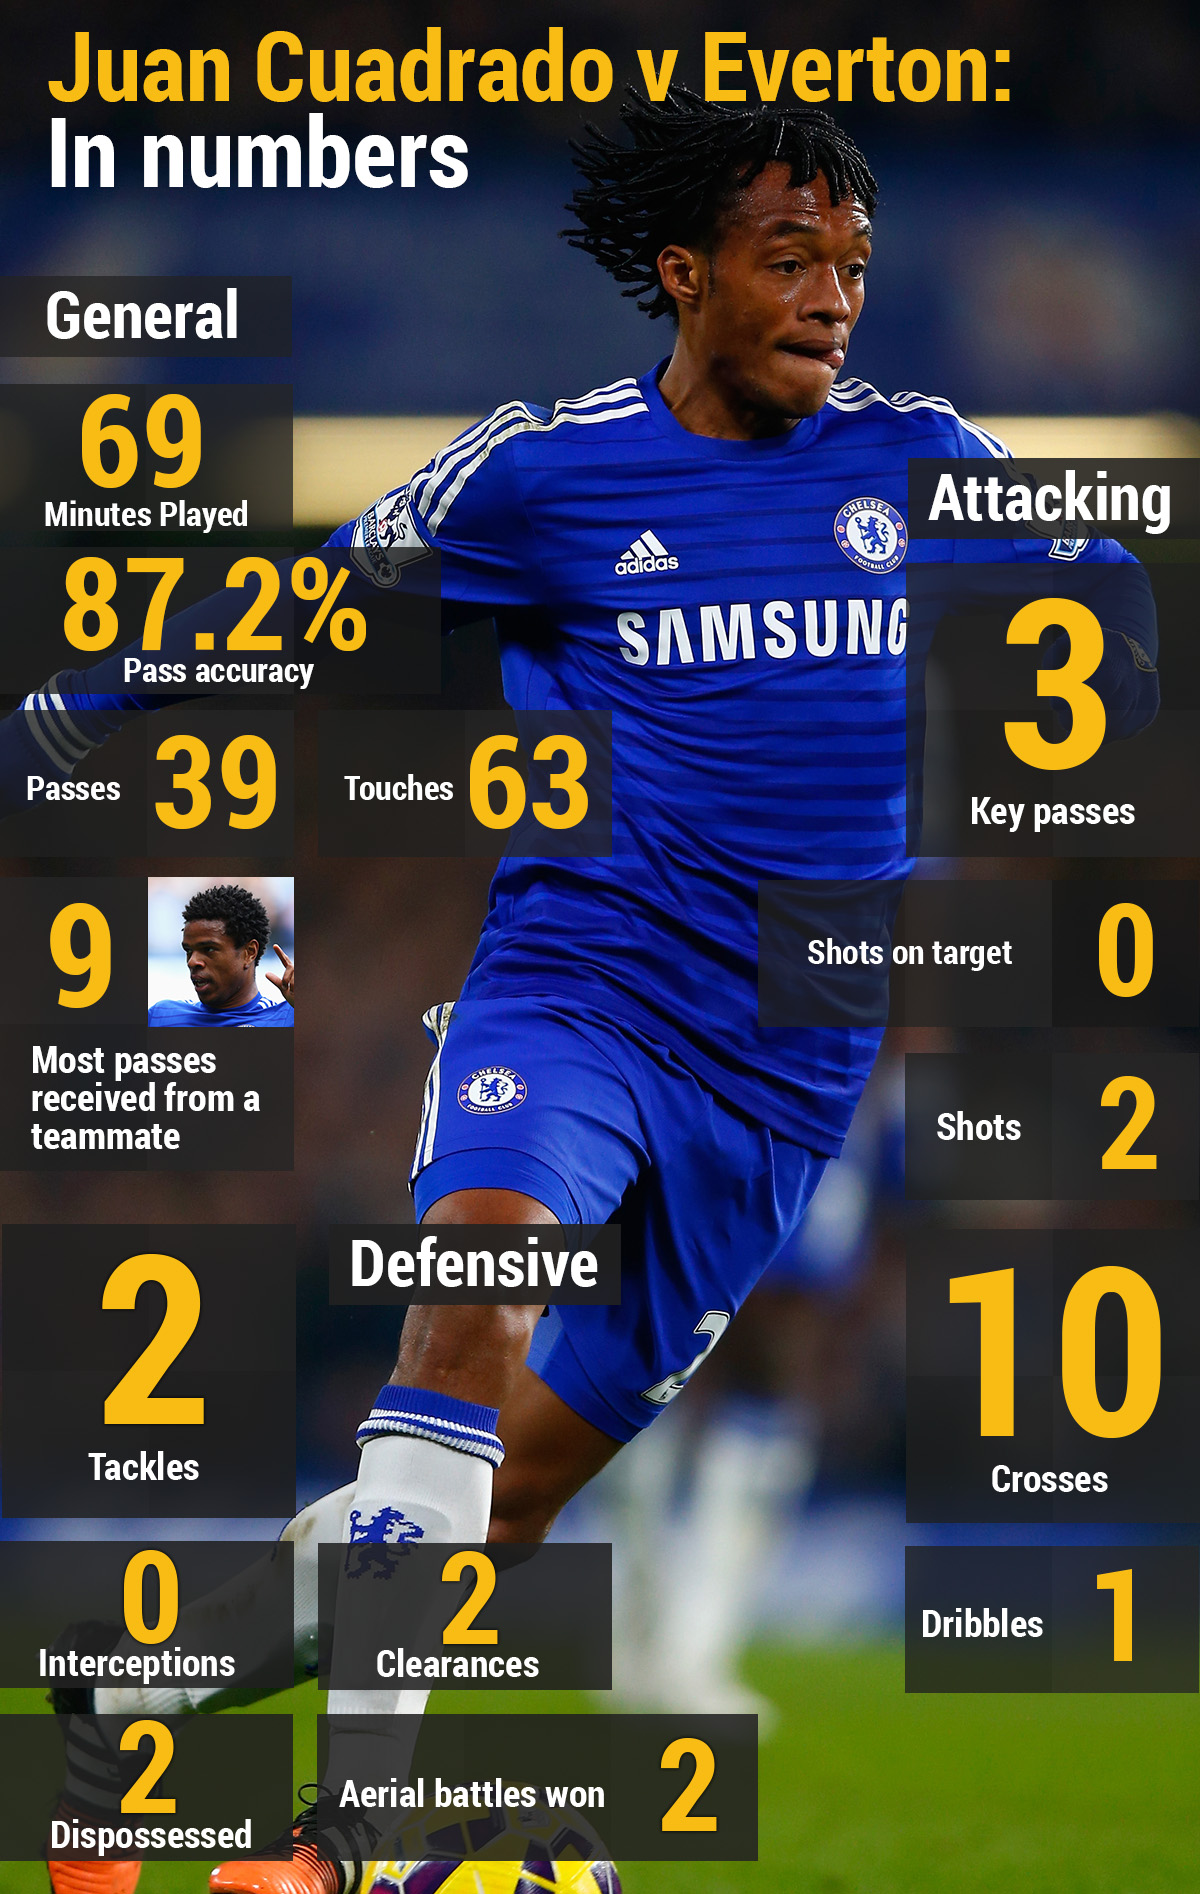 Juan Cuadrado v Everton in numbers